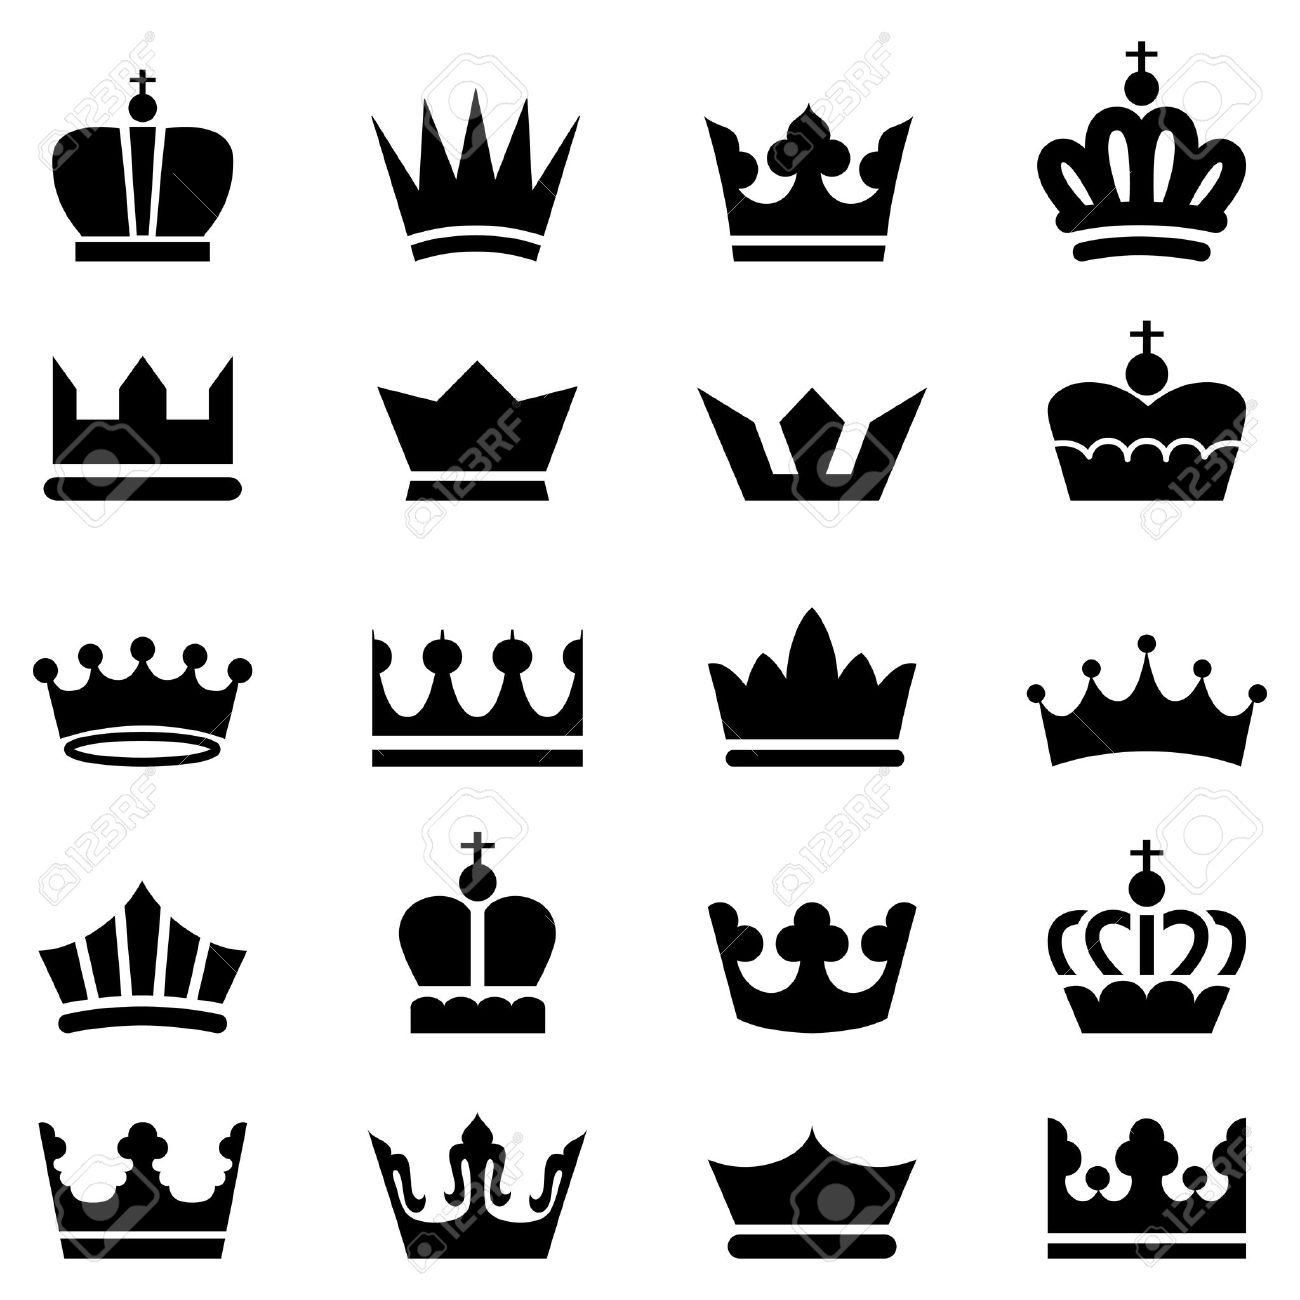 King crown stock photos royalty free king crown images crown icons a set of 20 vector crown icons isolated on a white background thecheapjerseys Choice Image